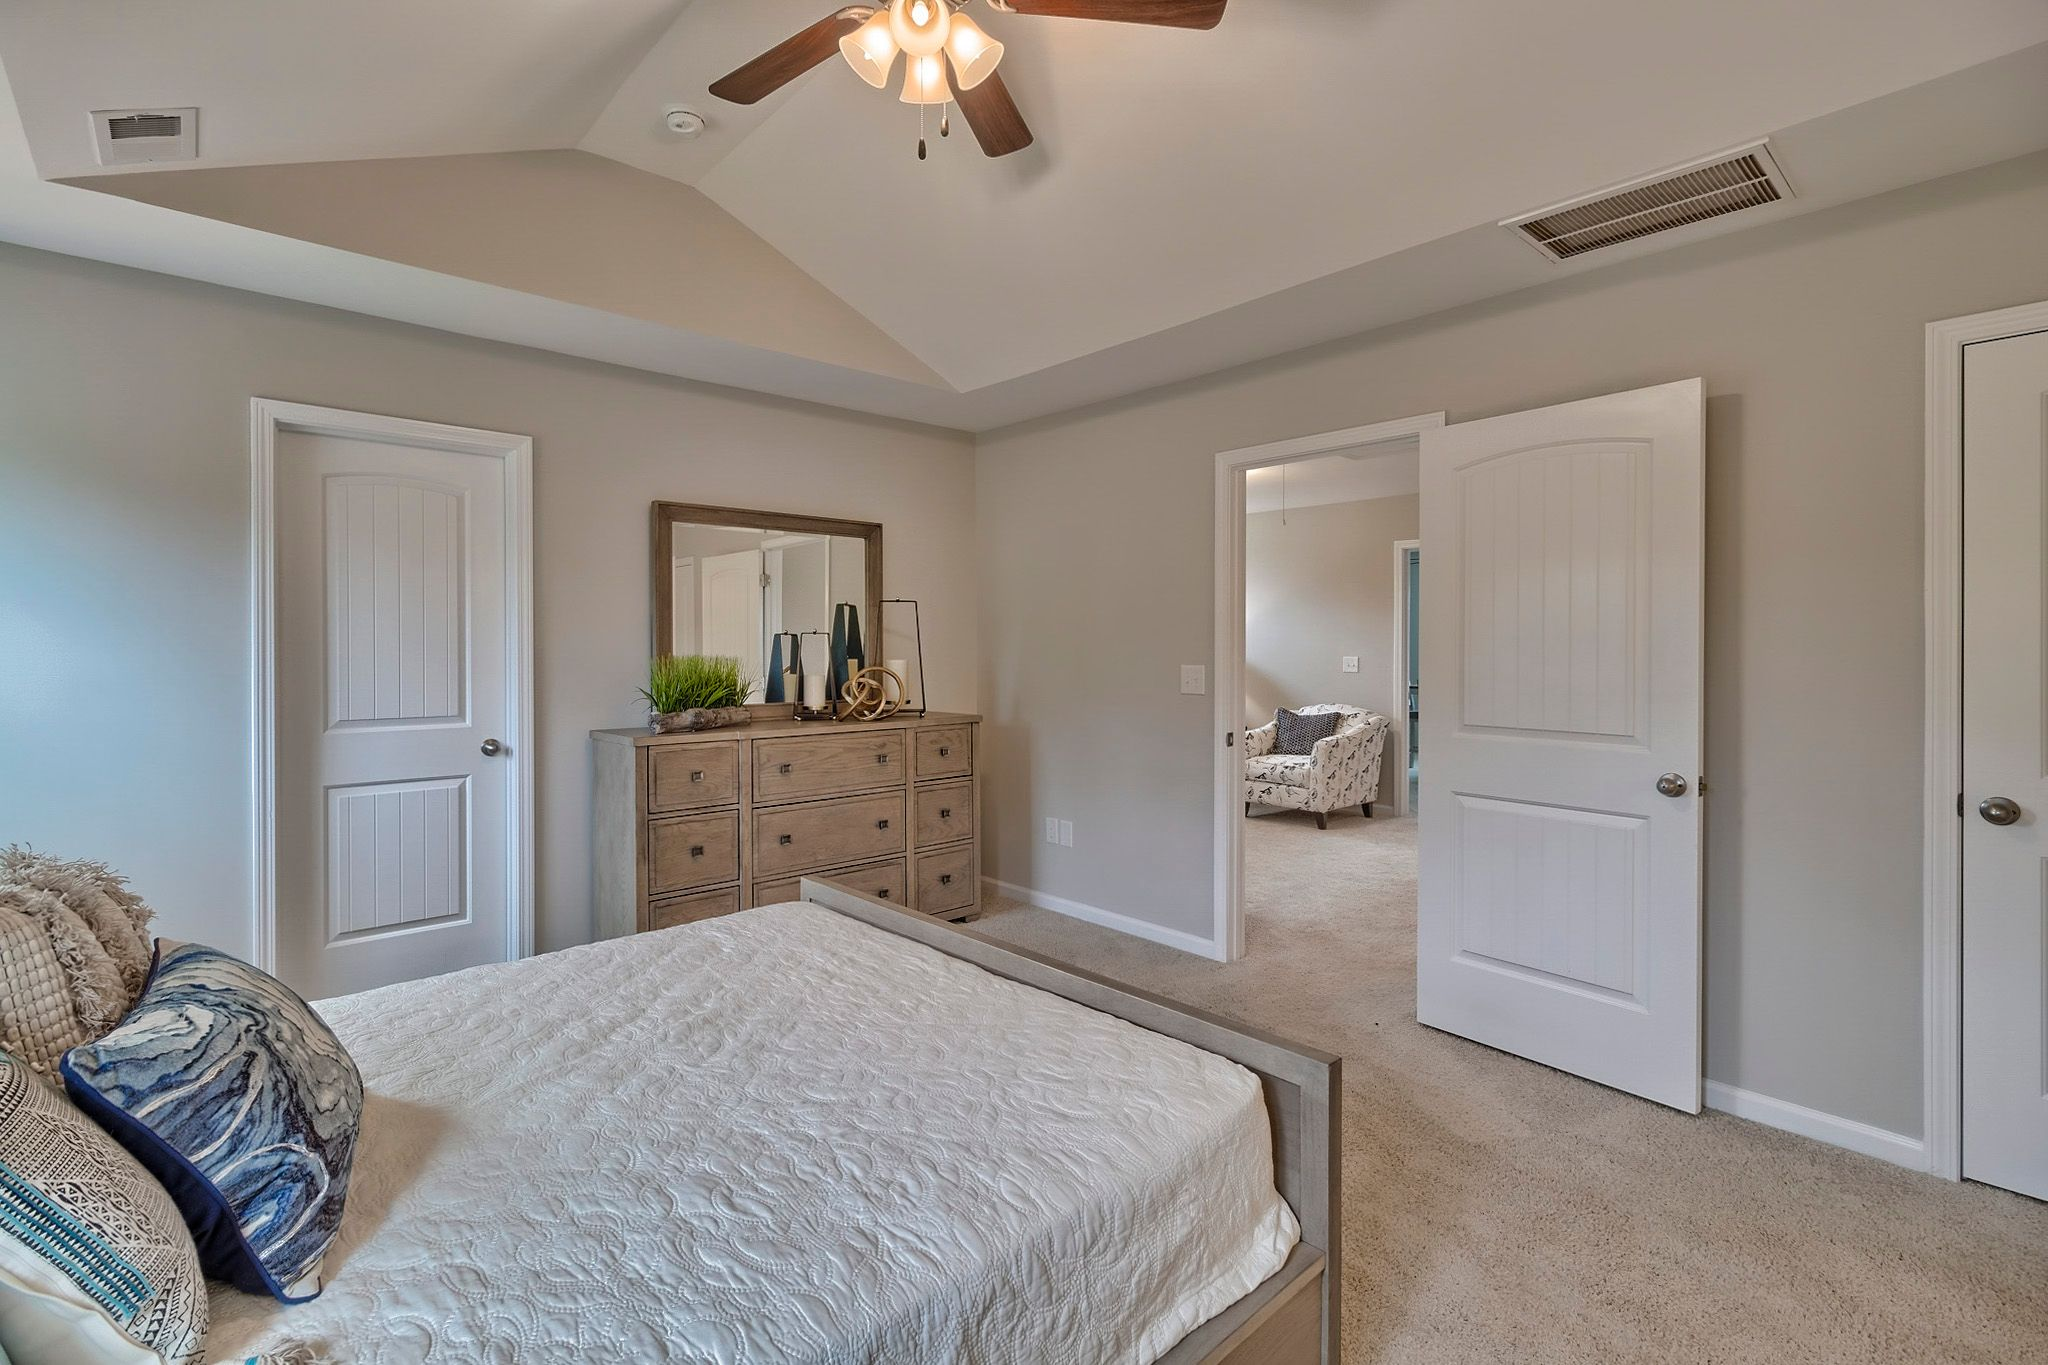 Bedroom featured in the Bentcreek B By Great Southern Homes in Columbia, SC